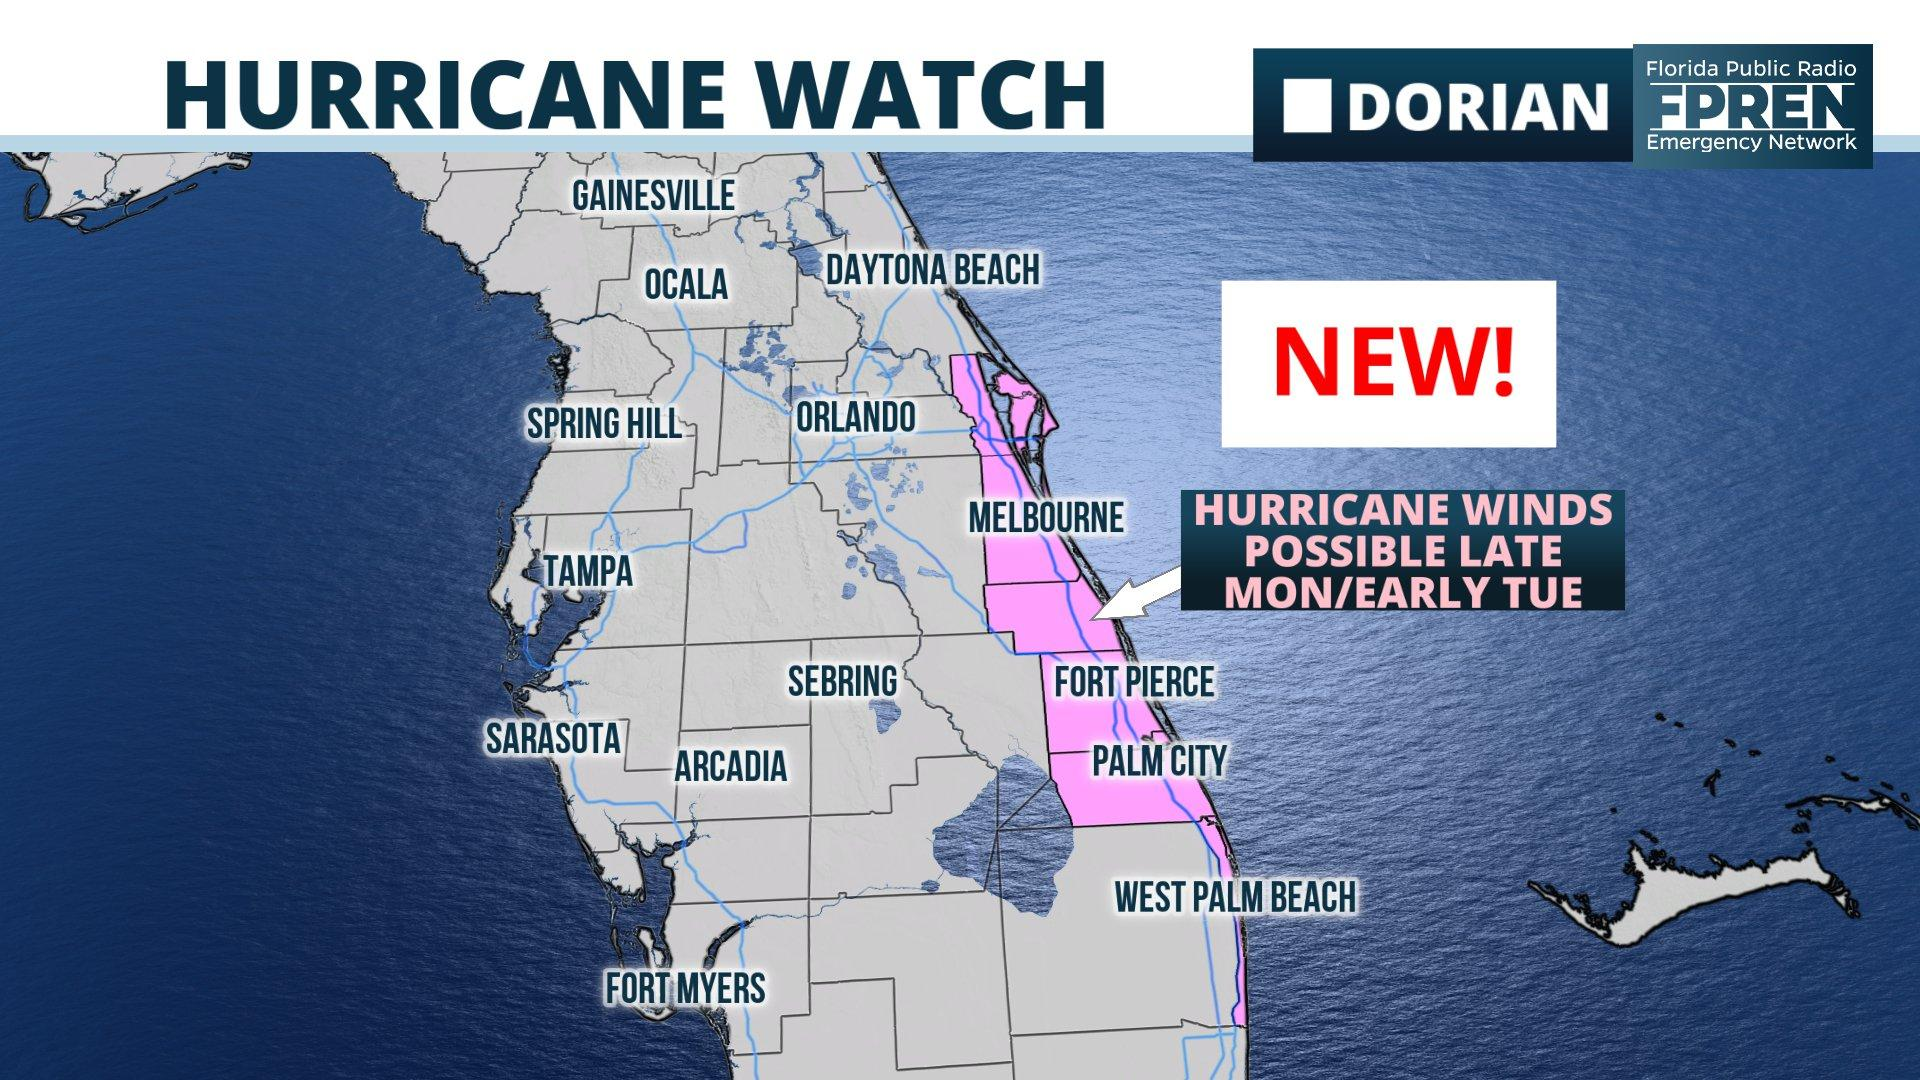 A hurricane watch was issued for parts of Florida's east coast